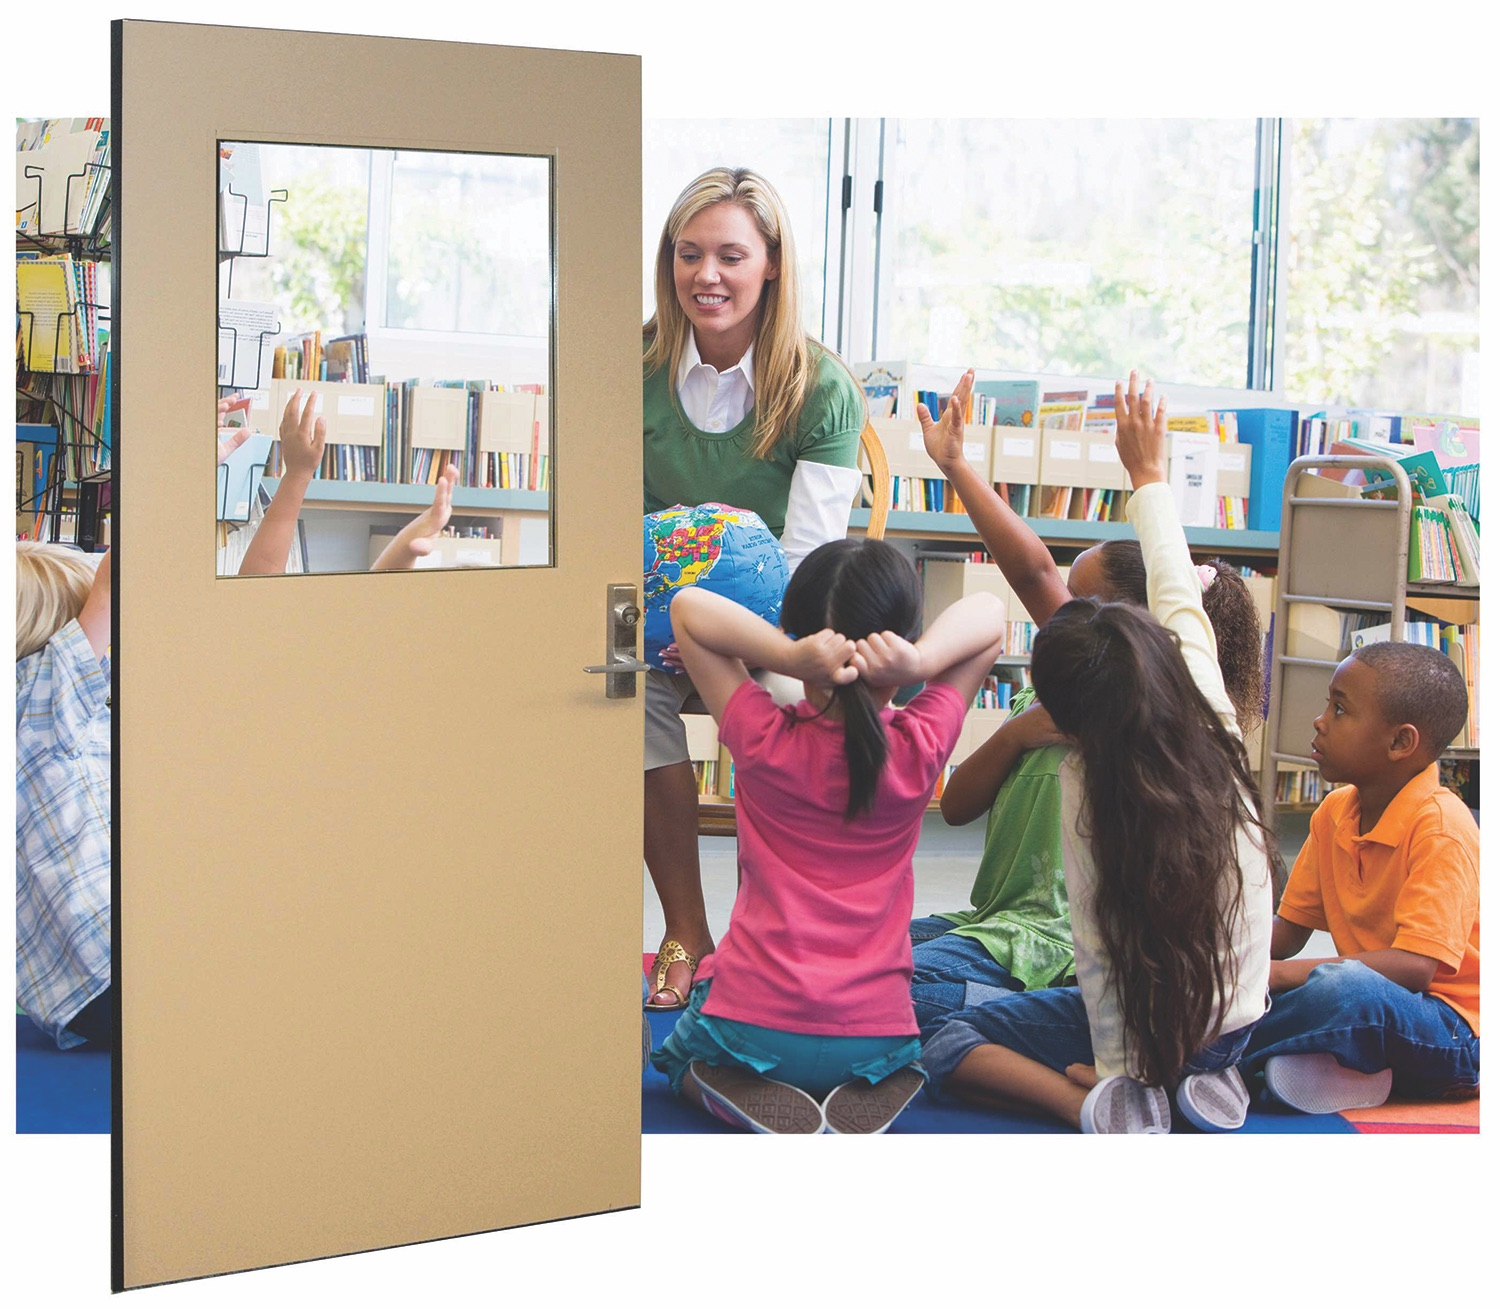 Ceco attack-resistant openings in a classroom setting